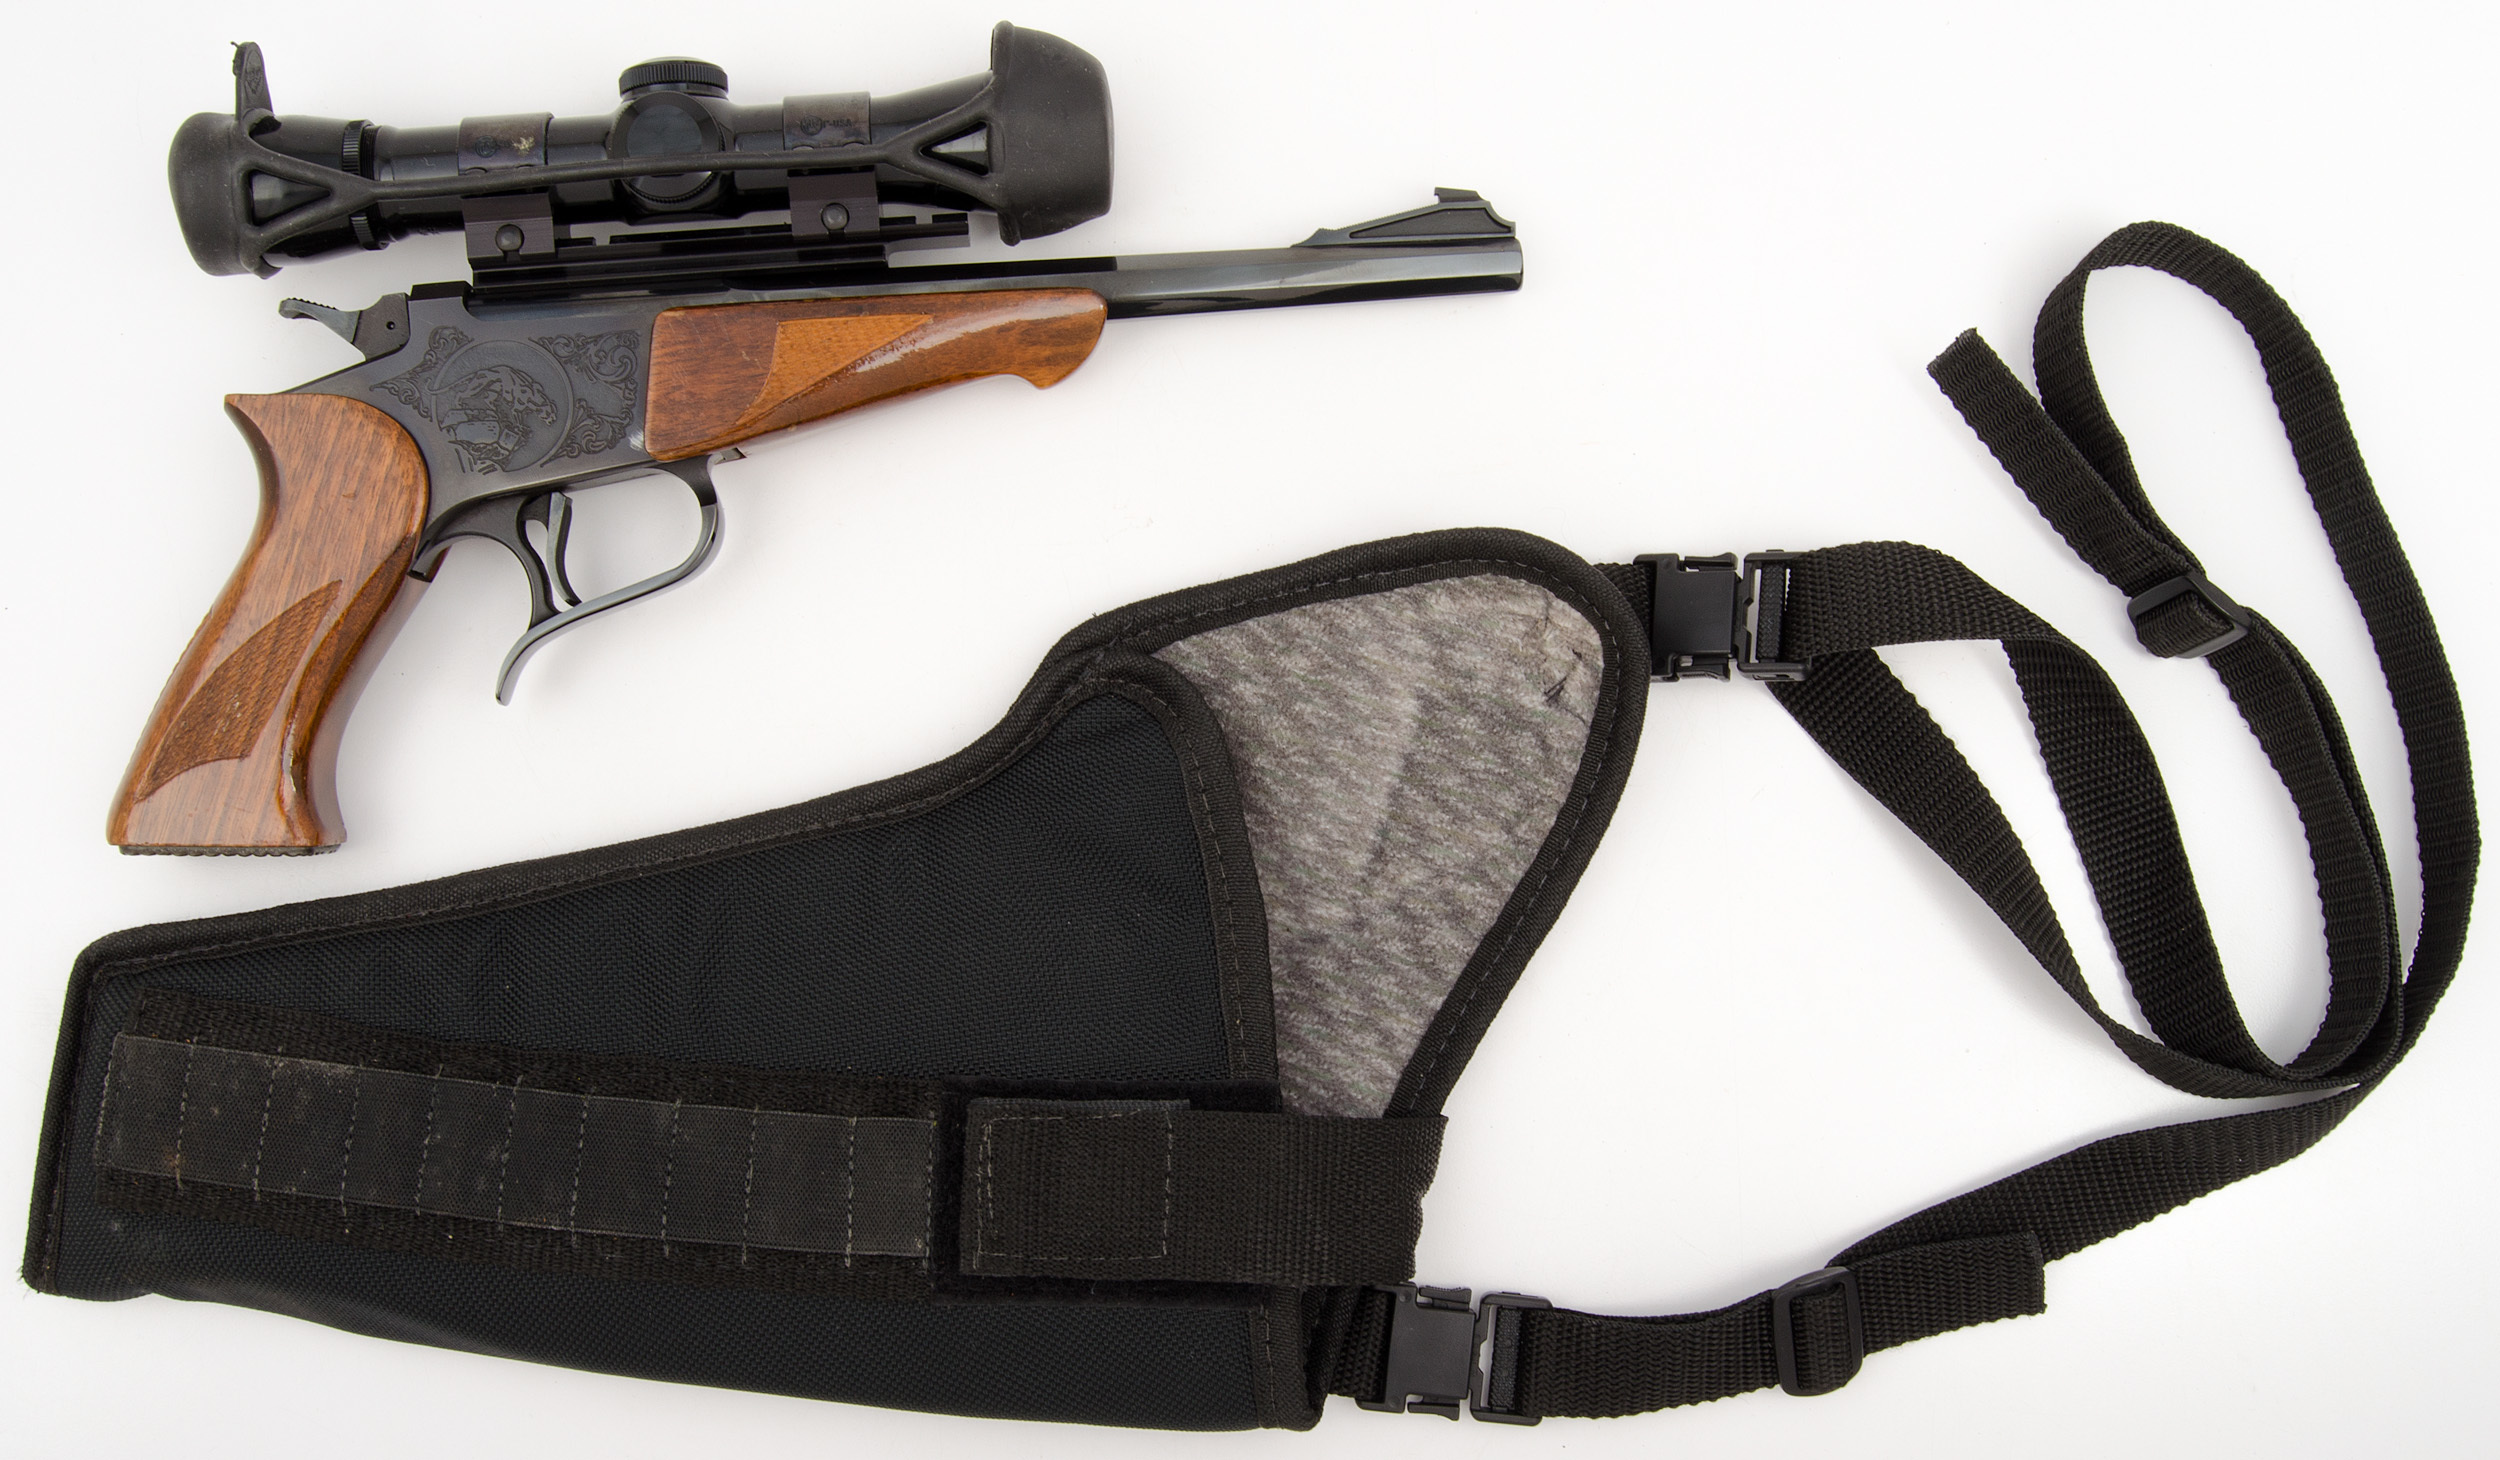 Thompson Center Arms Target Pistol with Weaver Scope and